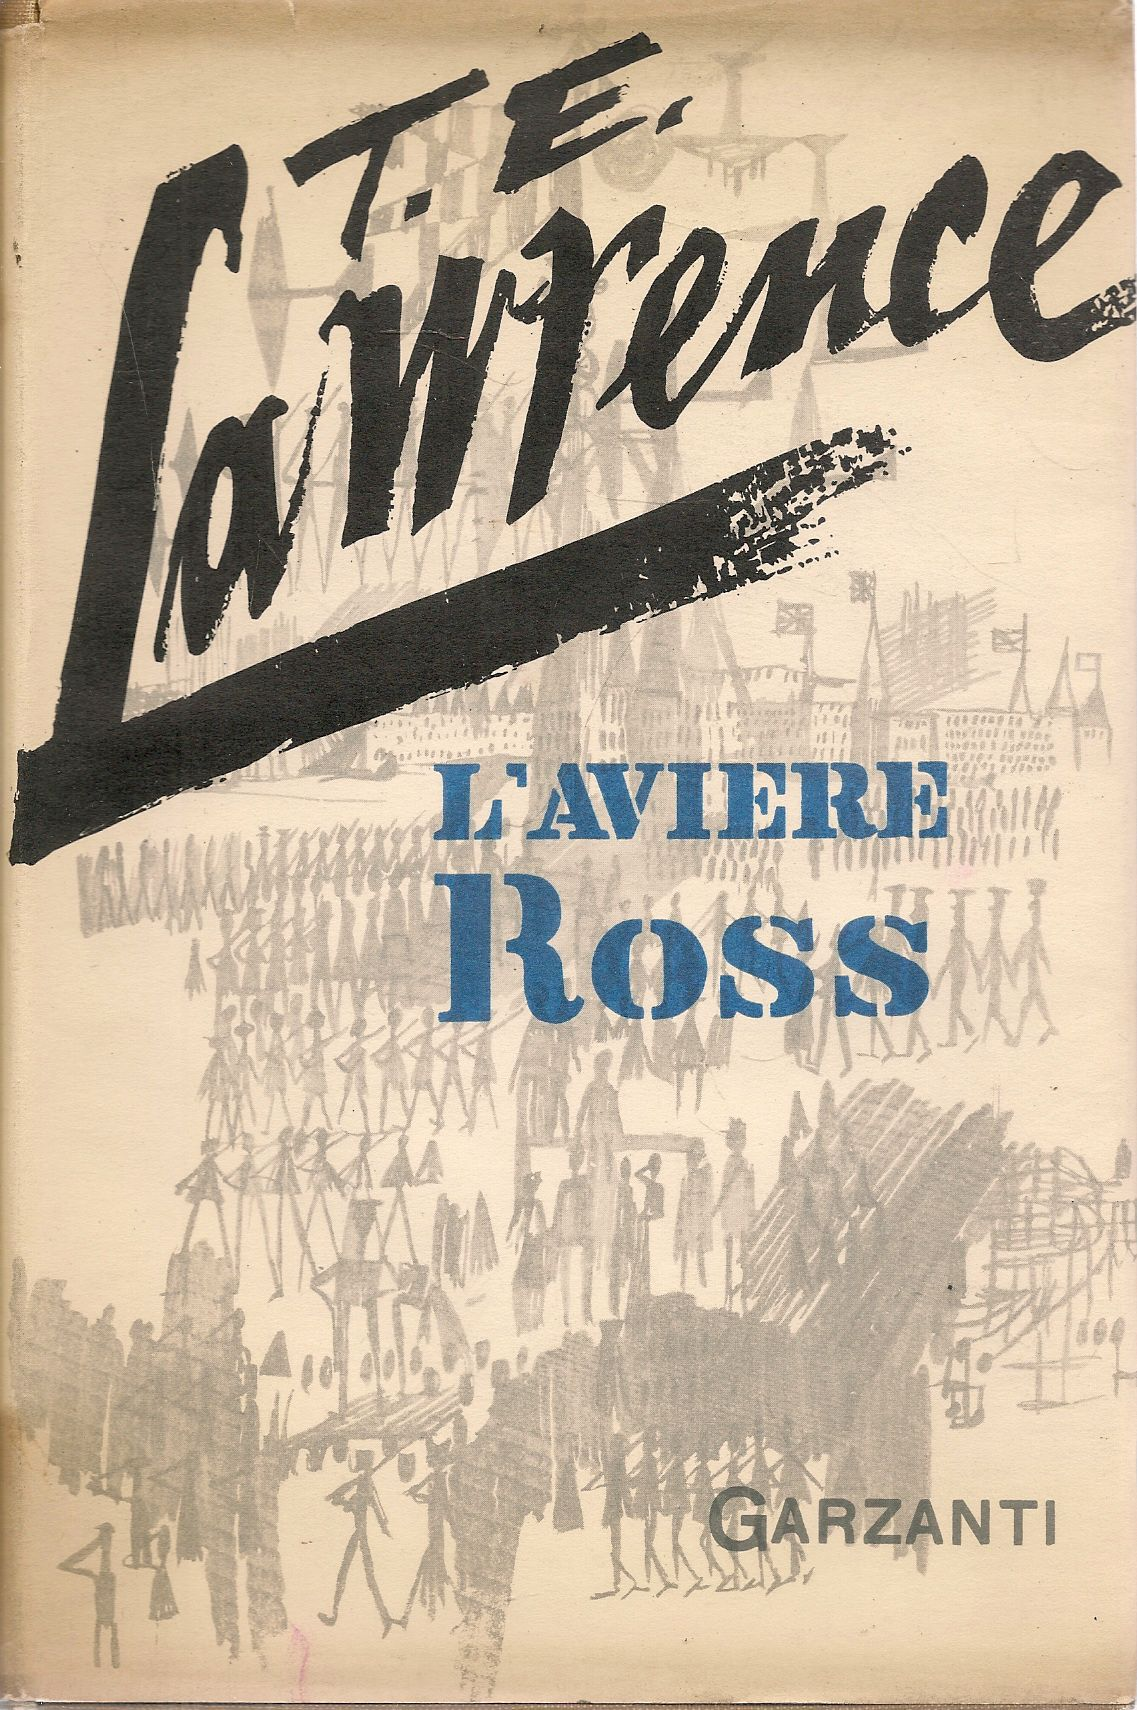 L'AVIERE ROSS - T.E. LAWRENCE